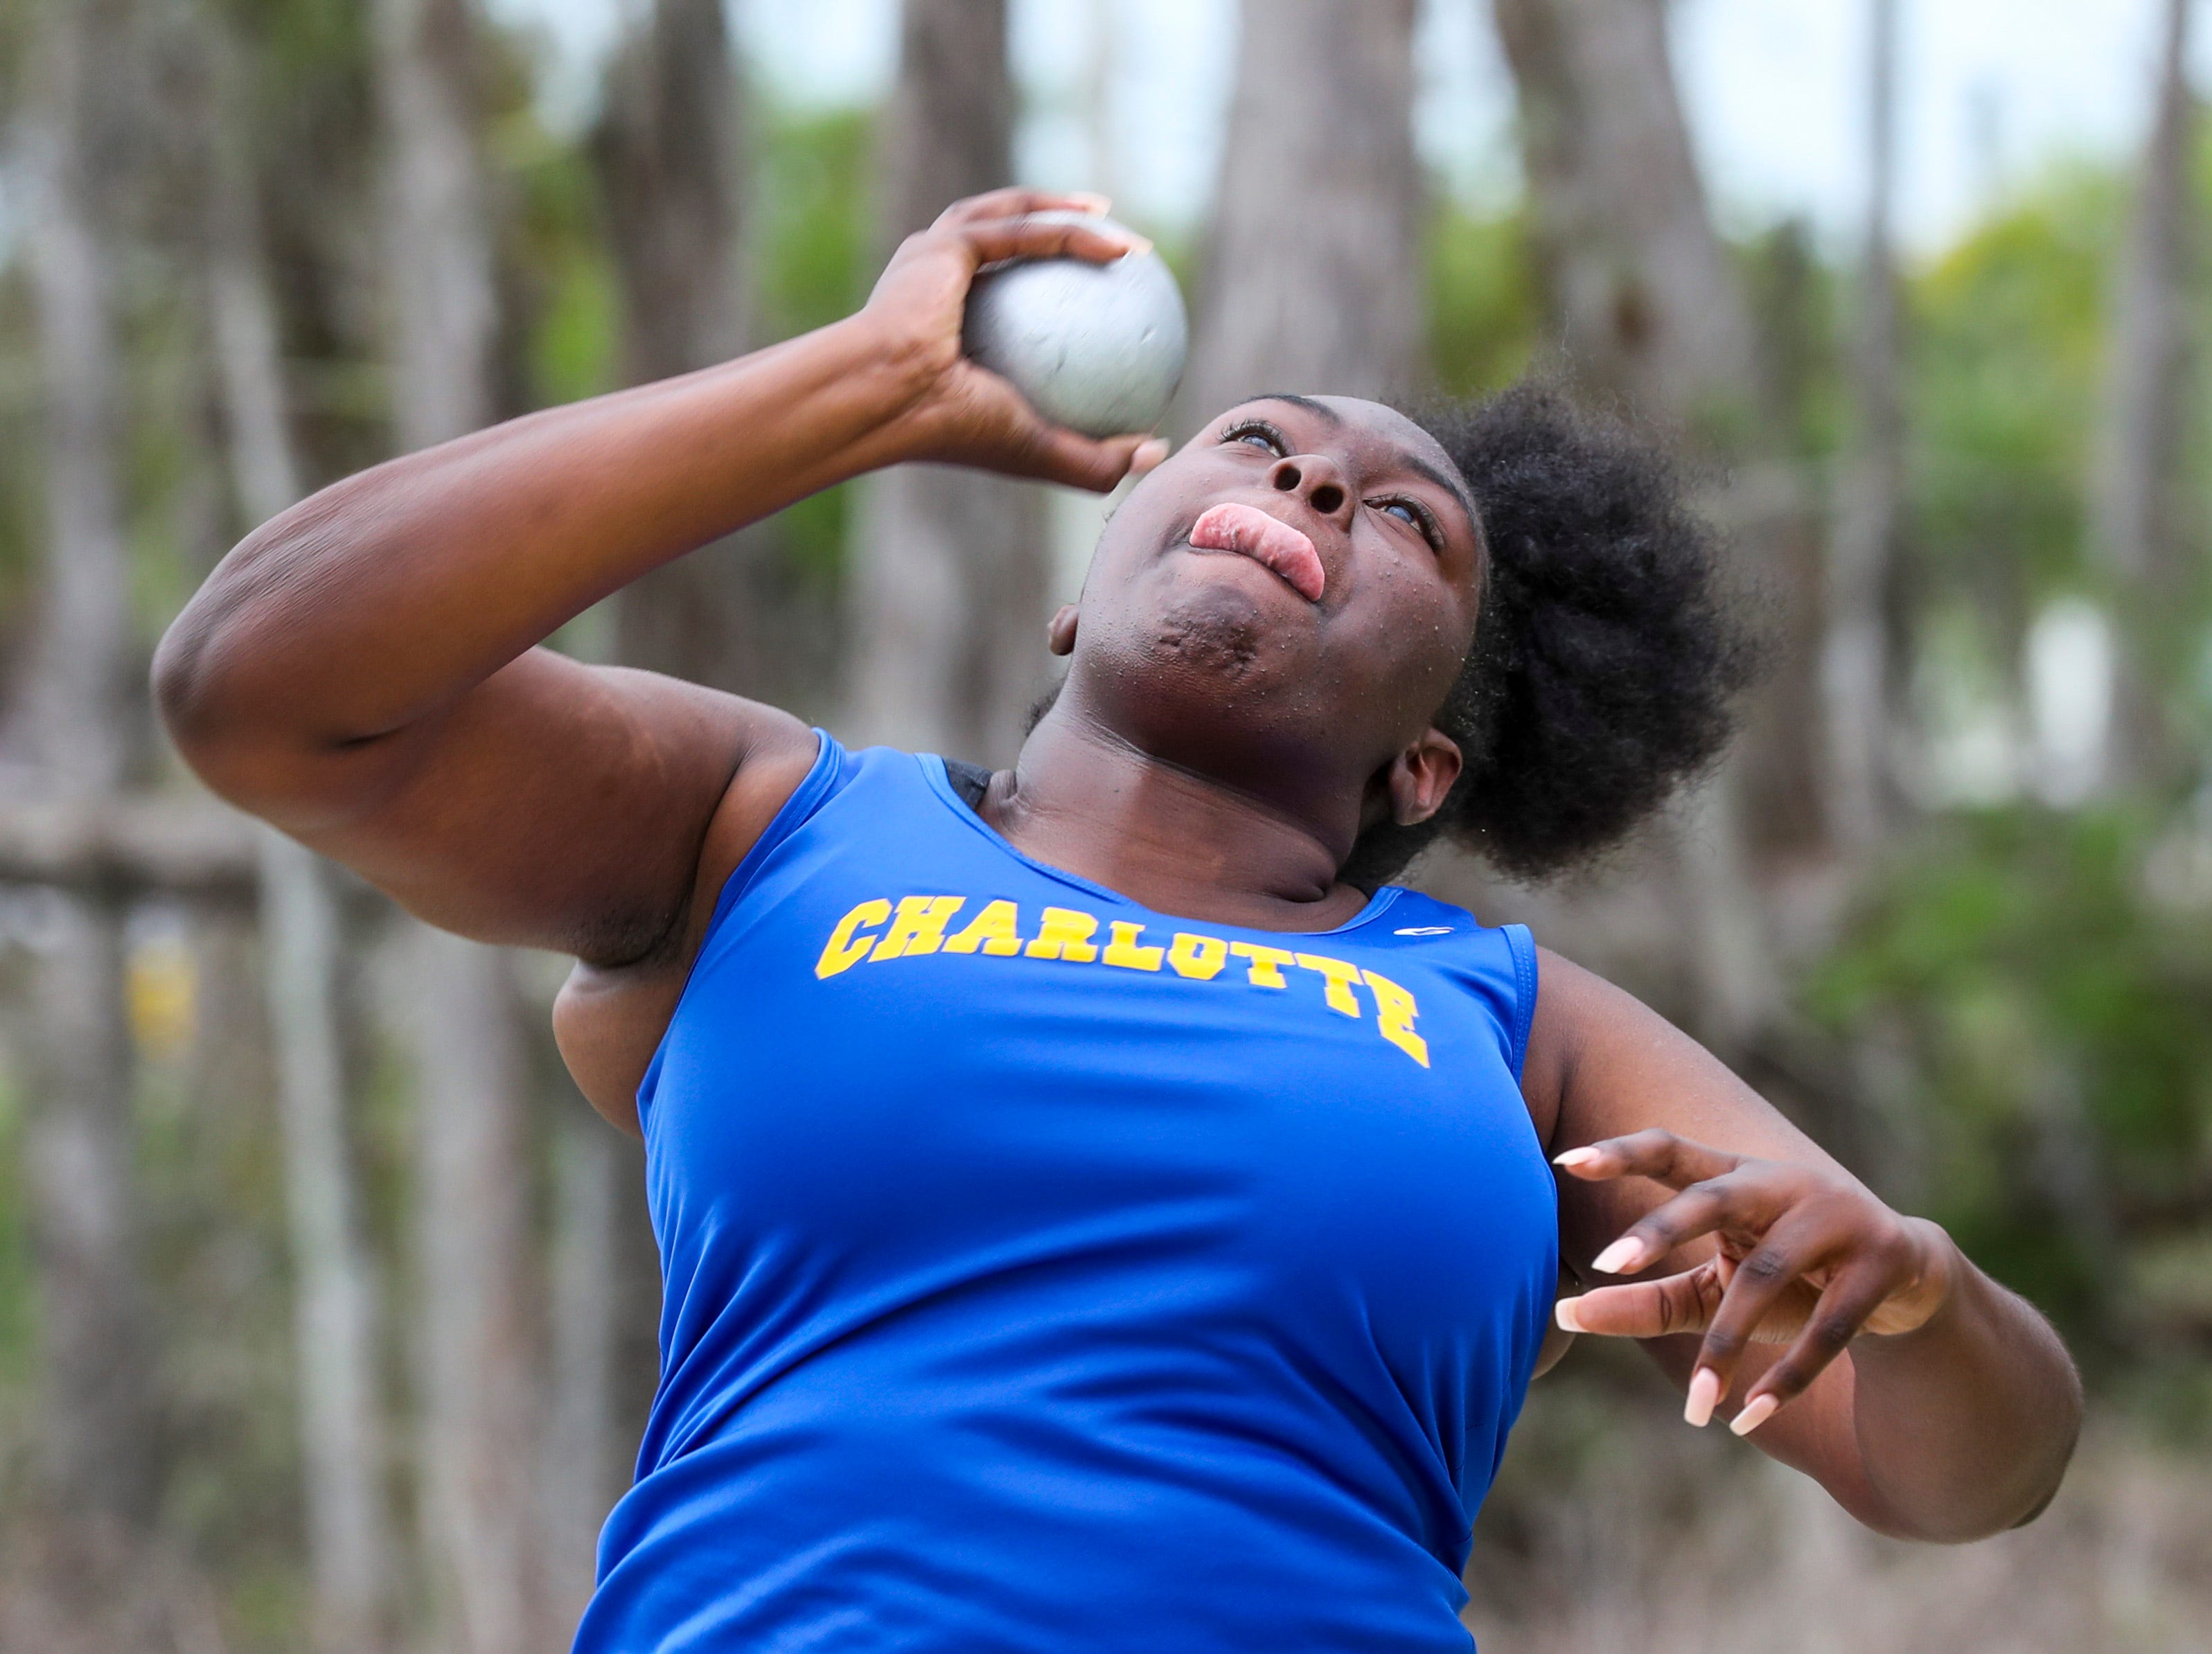 21st place - Cheyenne Warren